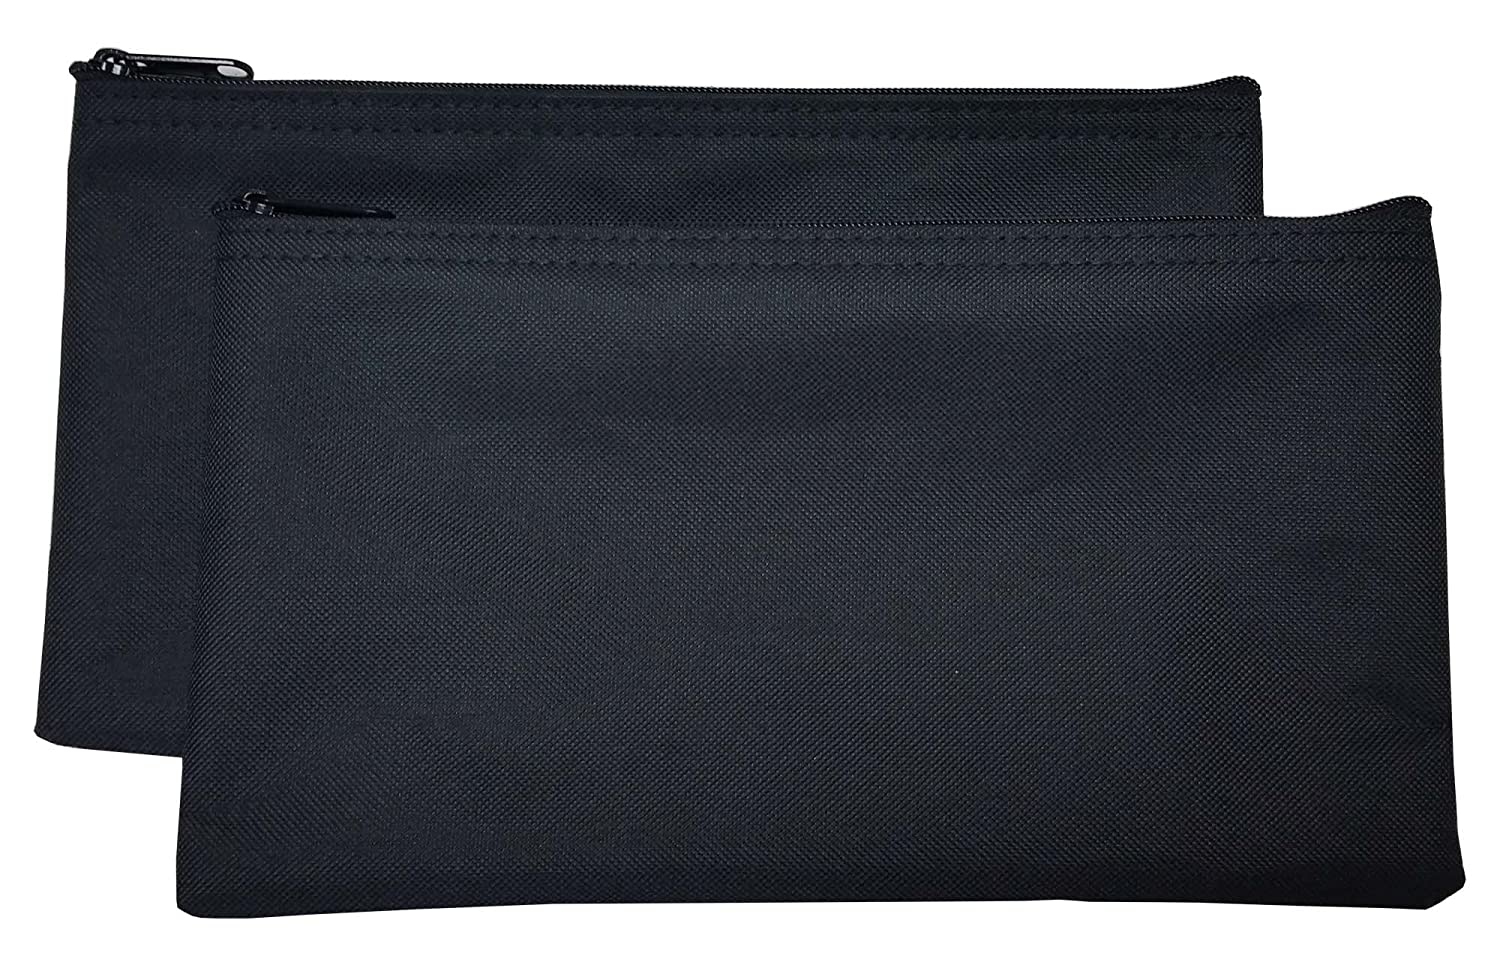 Zipper Bags Poly Cloth Value Package of 2 Bags (Black)